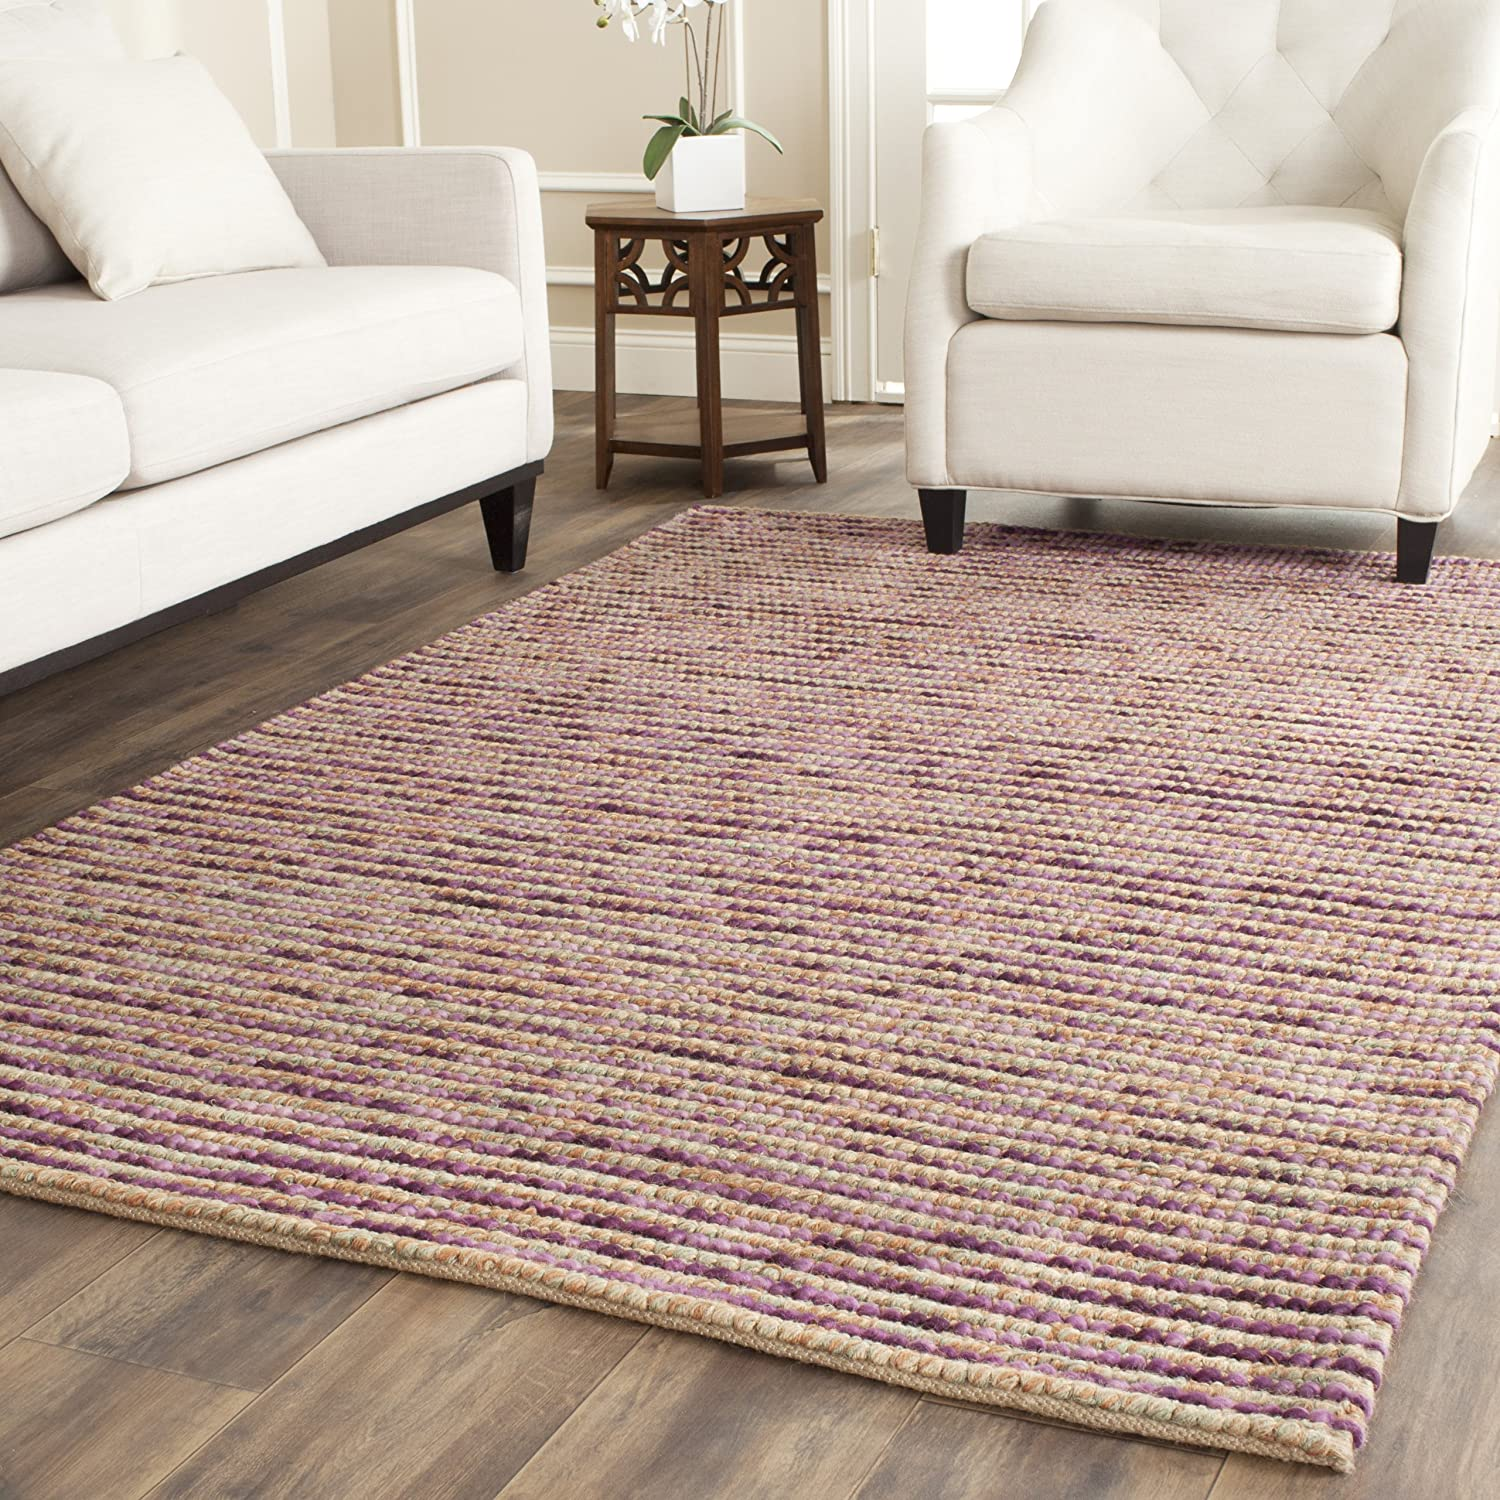 Safavieh Bohemian Collection BOH525F Hand-Knotted Beige and Multi Jute Area Rug, 2 feet by 3 feet (2' x 3') BOH525F-2